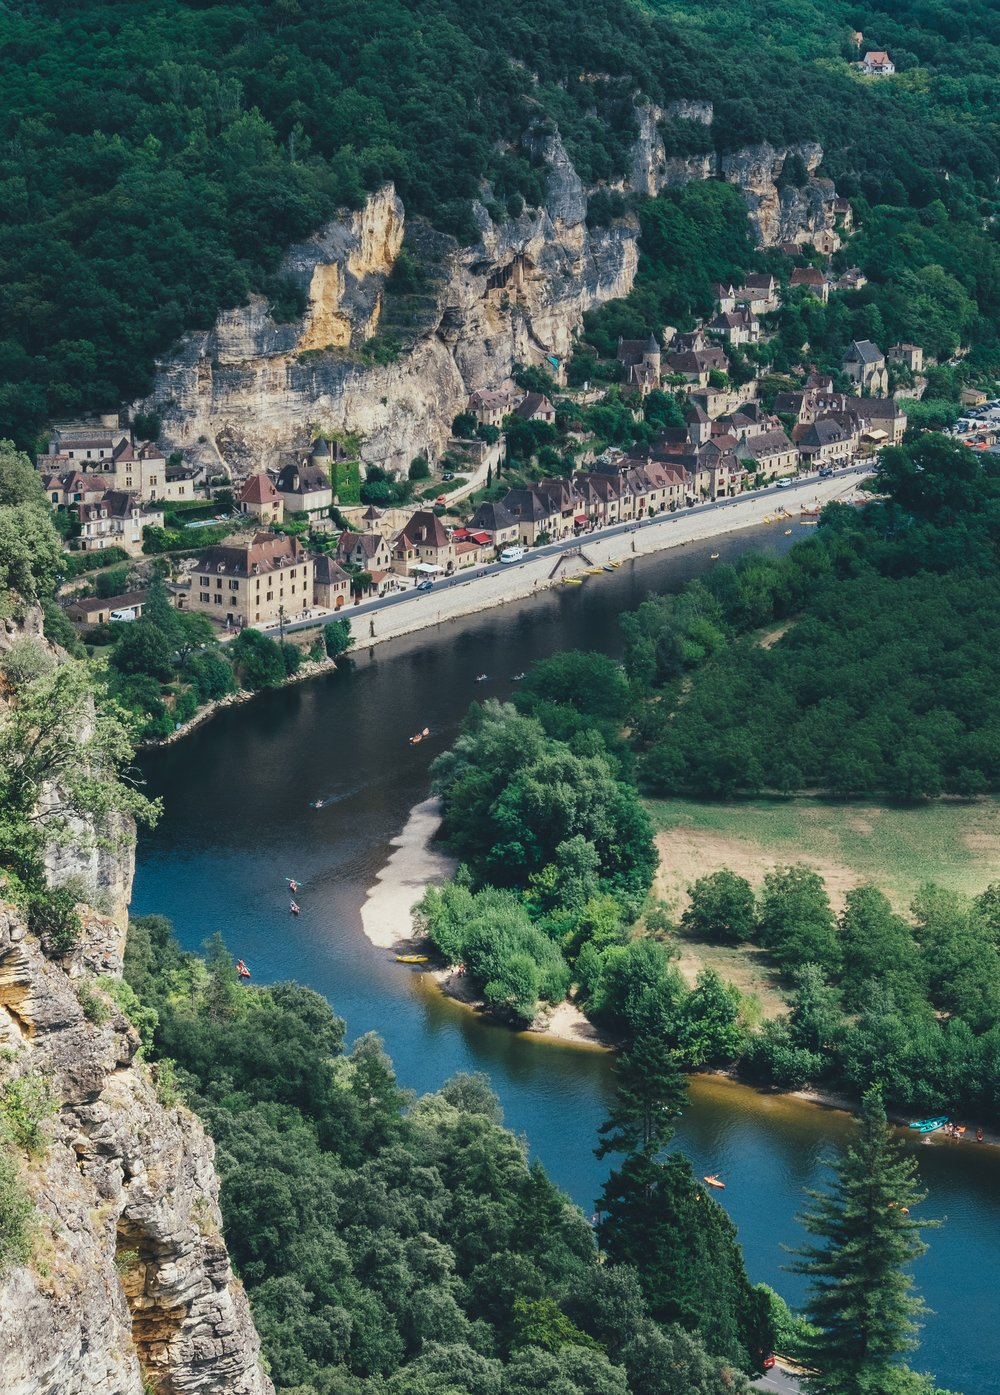 France's Dordogne region recently earned itself number four spot on Lonely Planet's annual best destinations to visit in Europe, alongside the likes of Venice and Greece's Peloponnese islands.